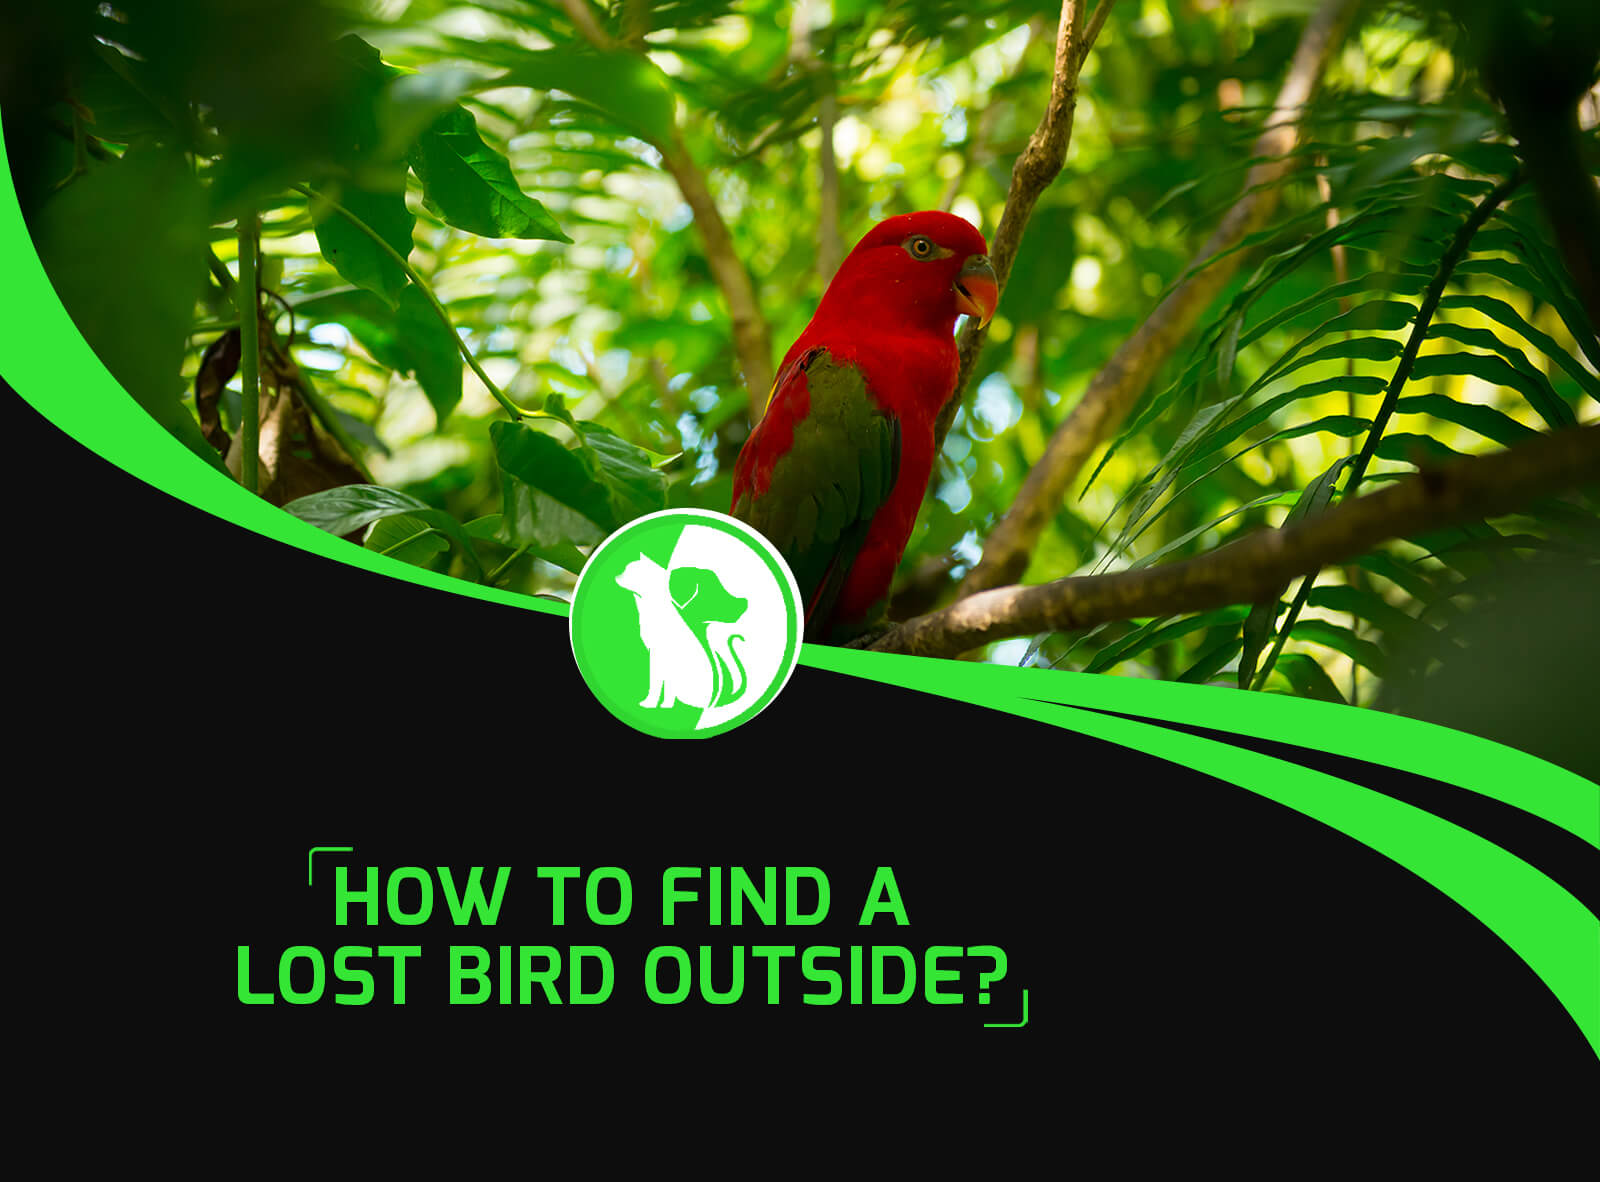 How To Find A Lost Bird Outside?